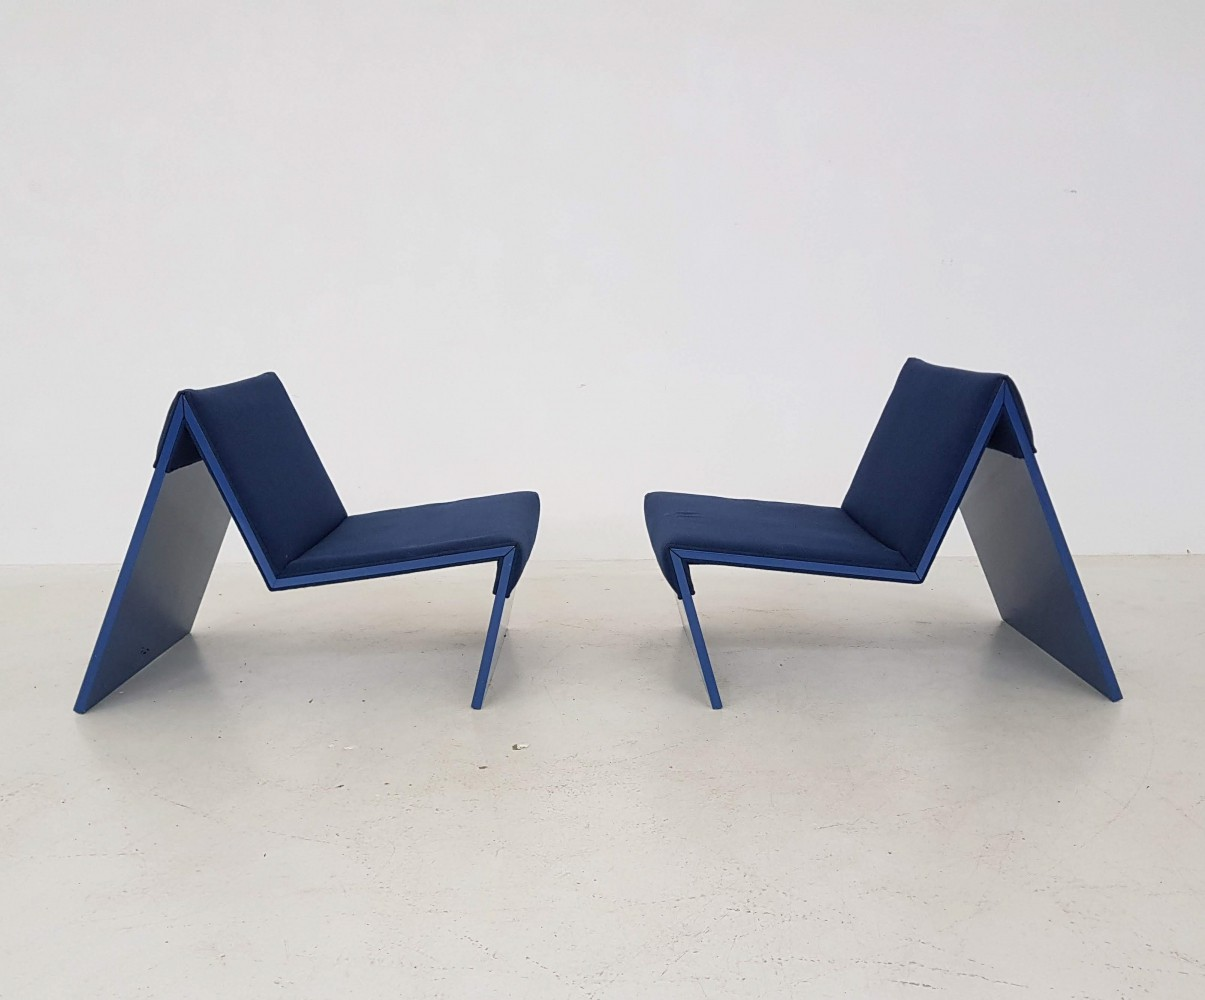 Pair of sz10 lounge chairs by Ton Haas & Hans Ebbing for Spectrum, 1980s